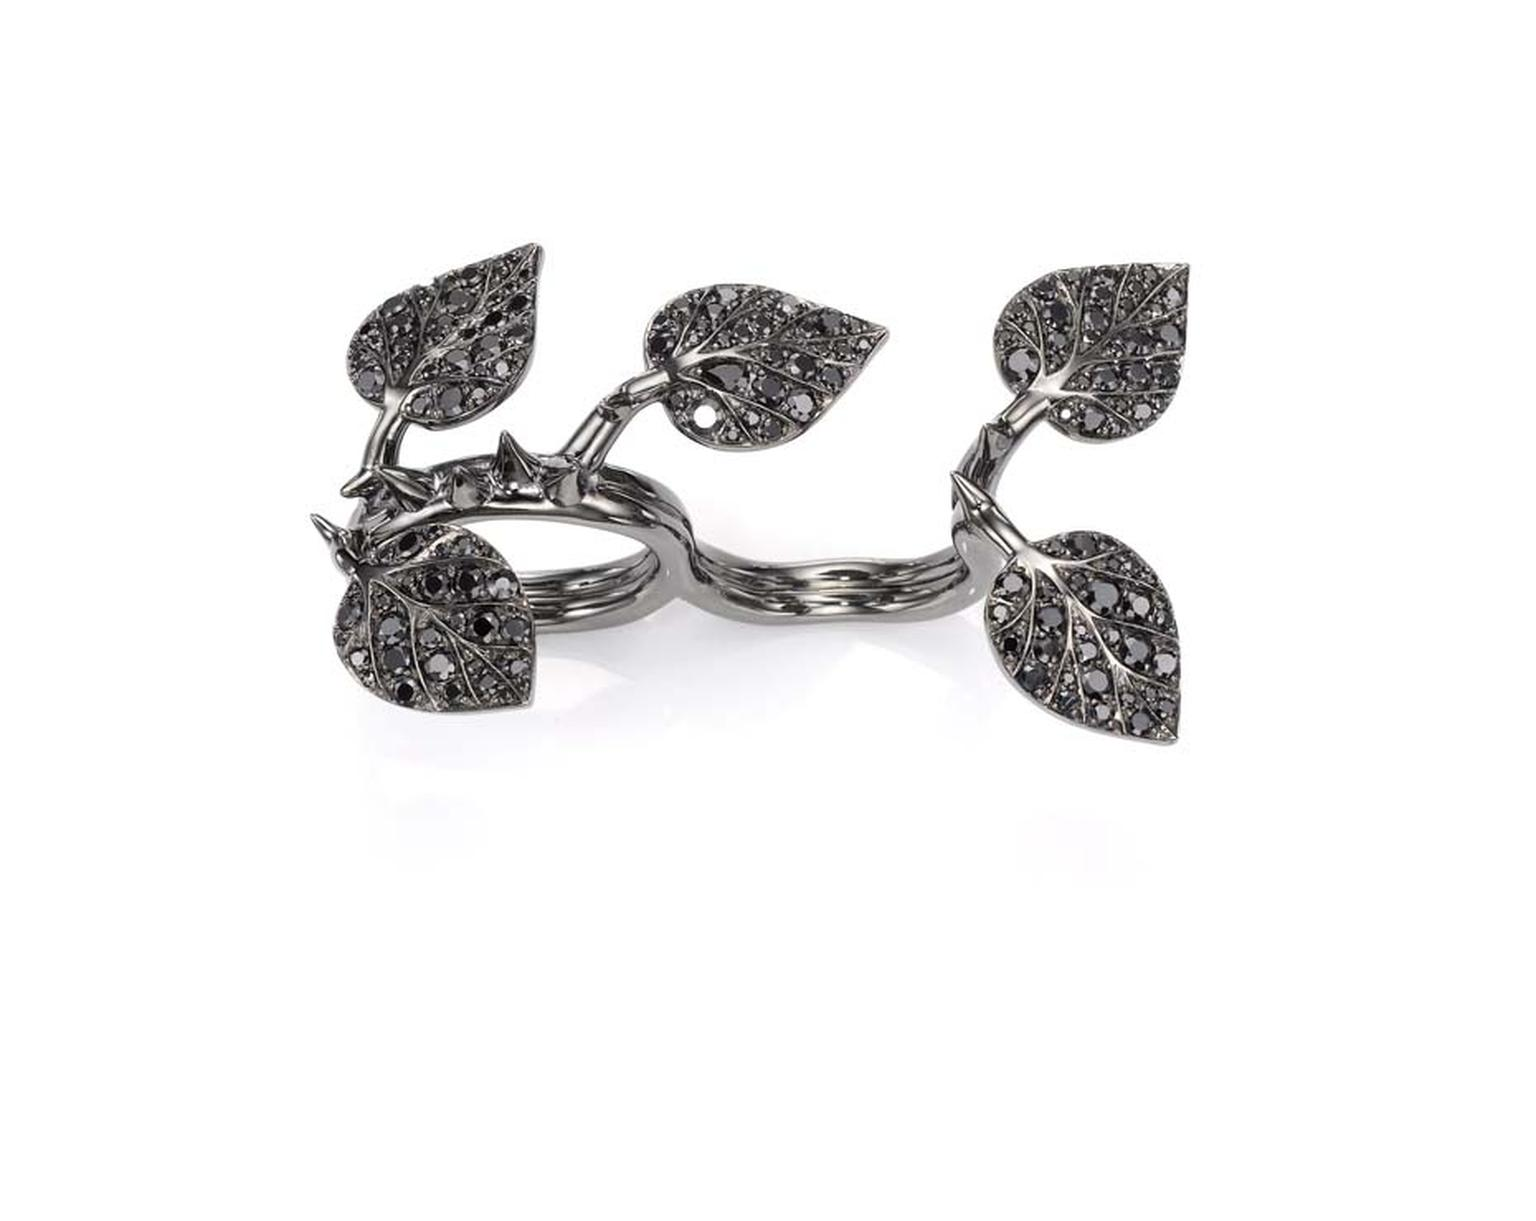 Crow's Nest Maleficent Collection Thorn ring set with rhodium and black diamonds.